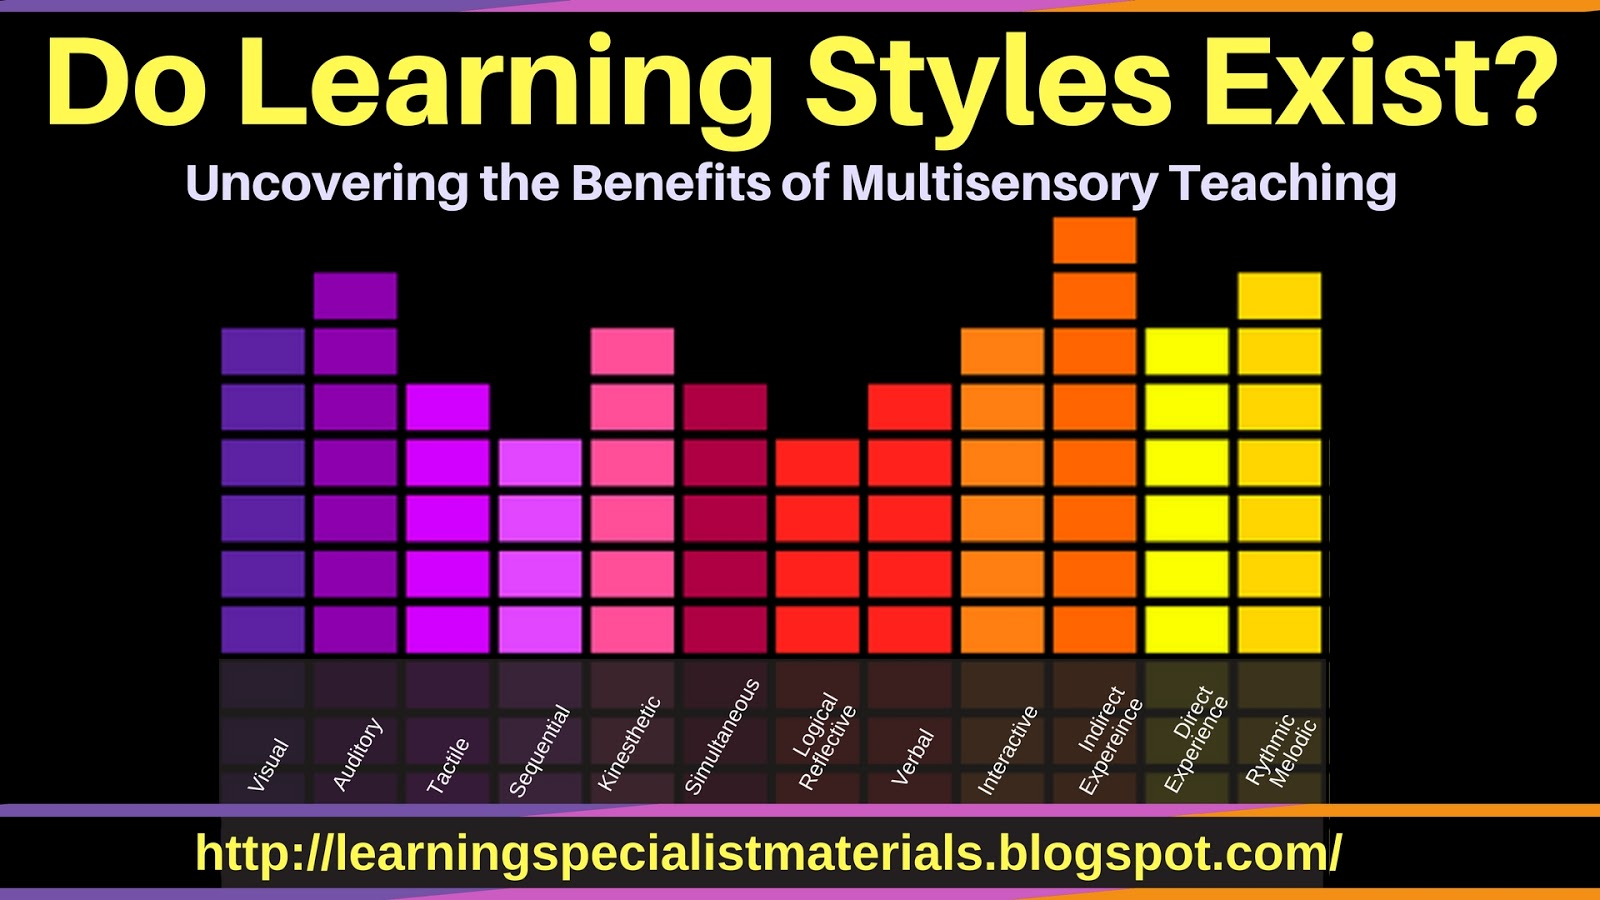 Do learning styles exist?